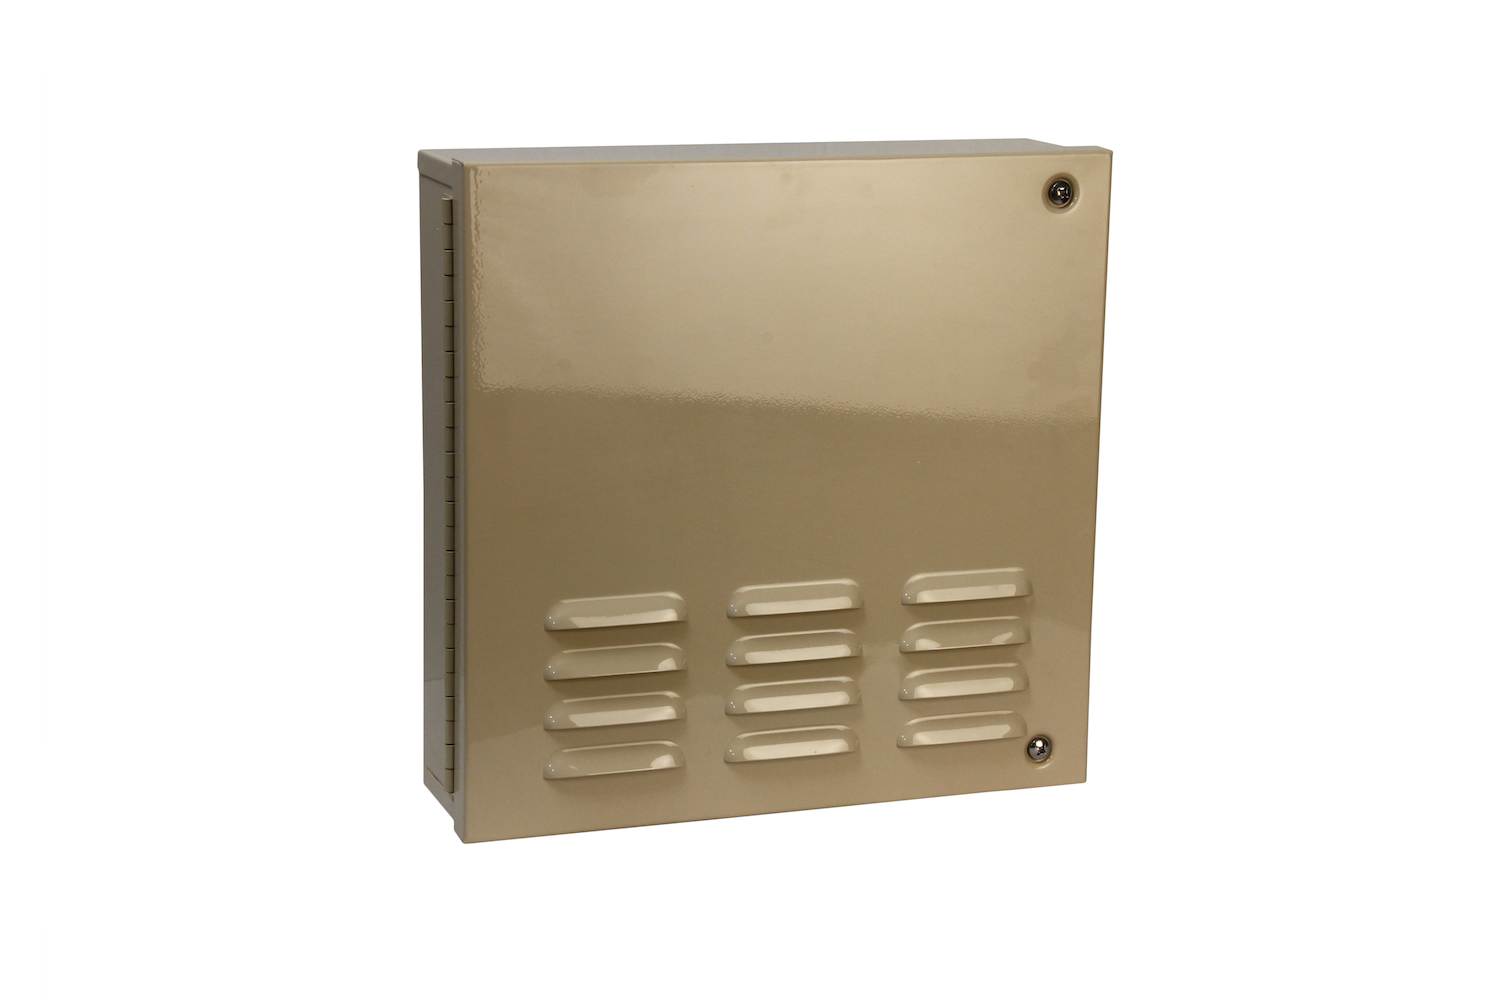 "#1010 Series Bell Box / Hinged   Overall dimensions 14 x 14 x 4"" 18 ga electro—galvanized steel Individual weight 16 lbs Master carton 16 x 16 x 9"" Gloss beige powder coating  With 12v 10"" burglar bell & plunger type Tamper switches installed / stainless screws included"